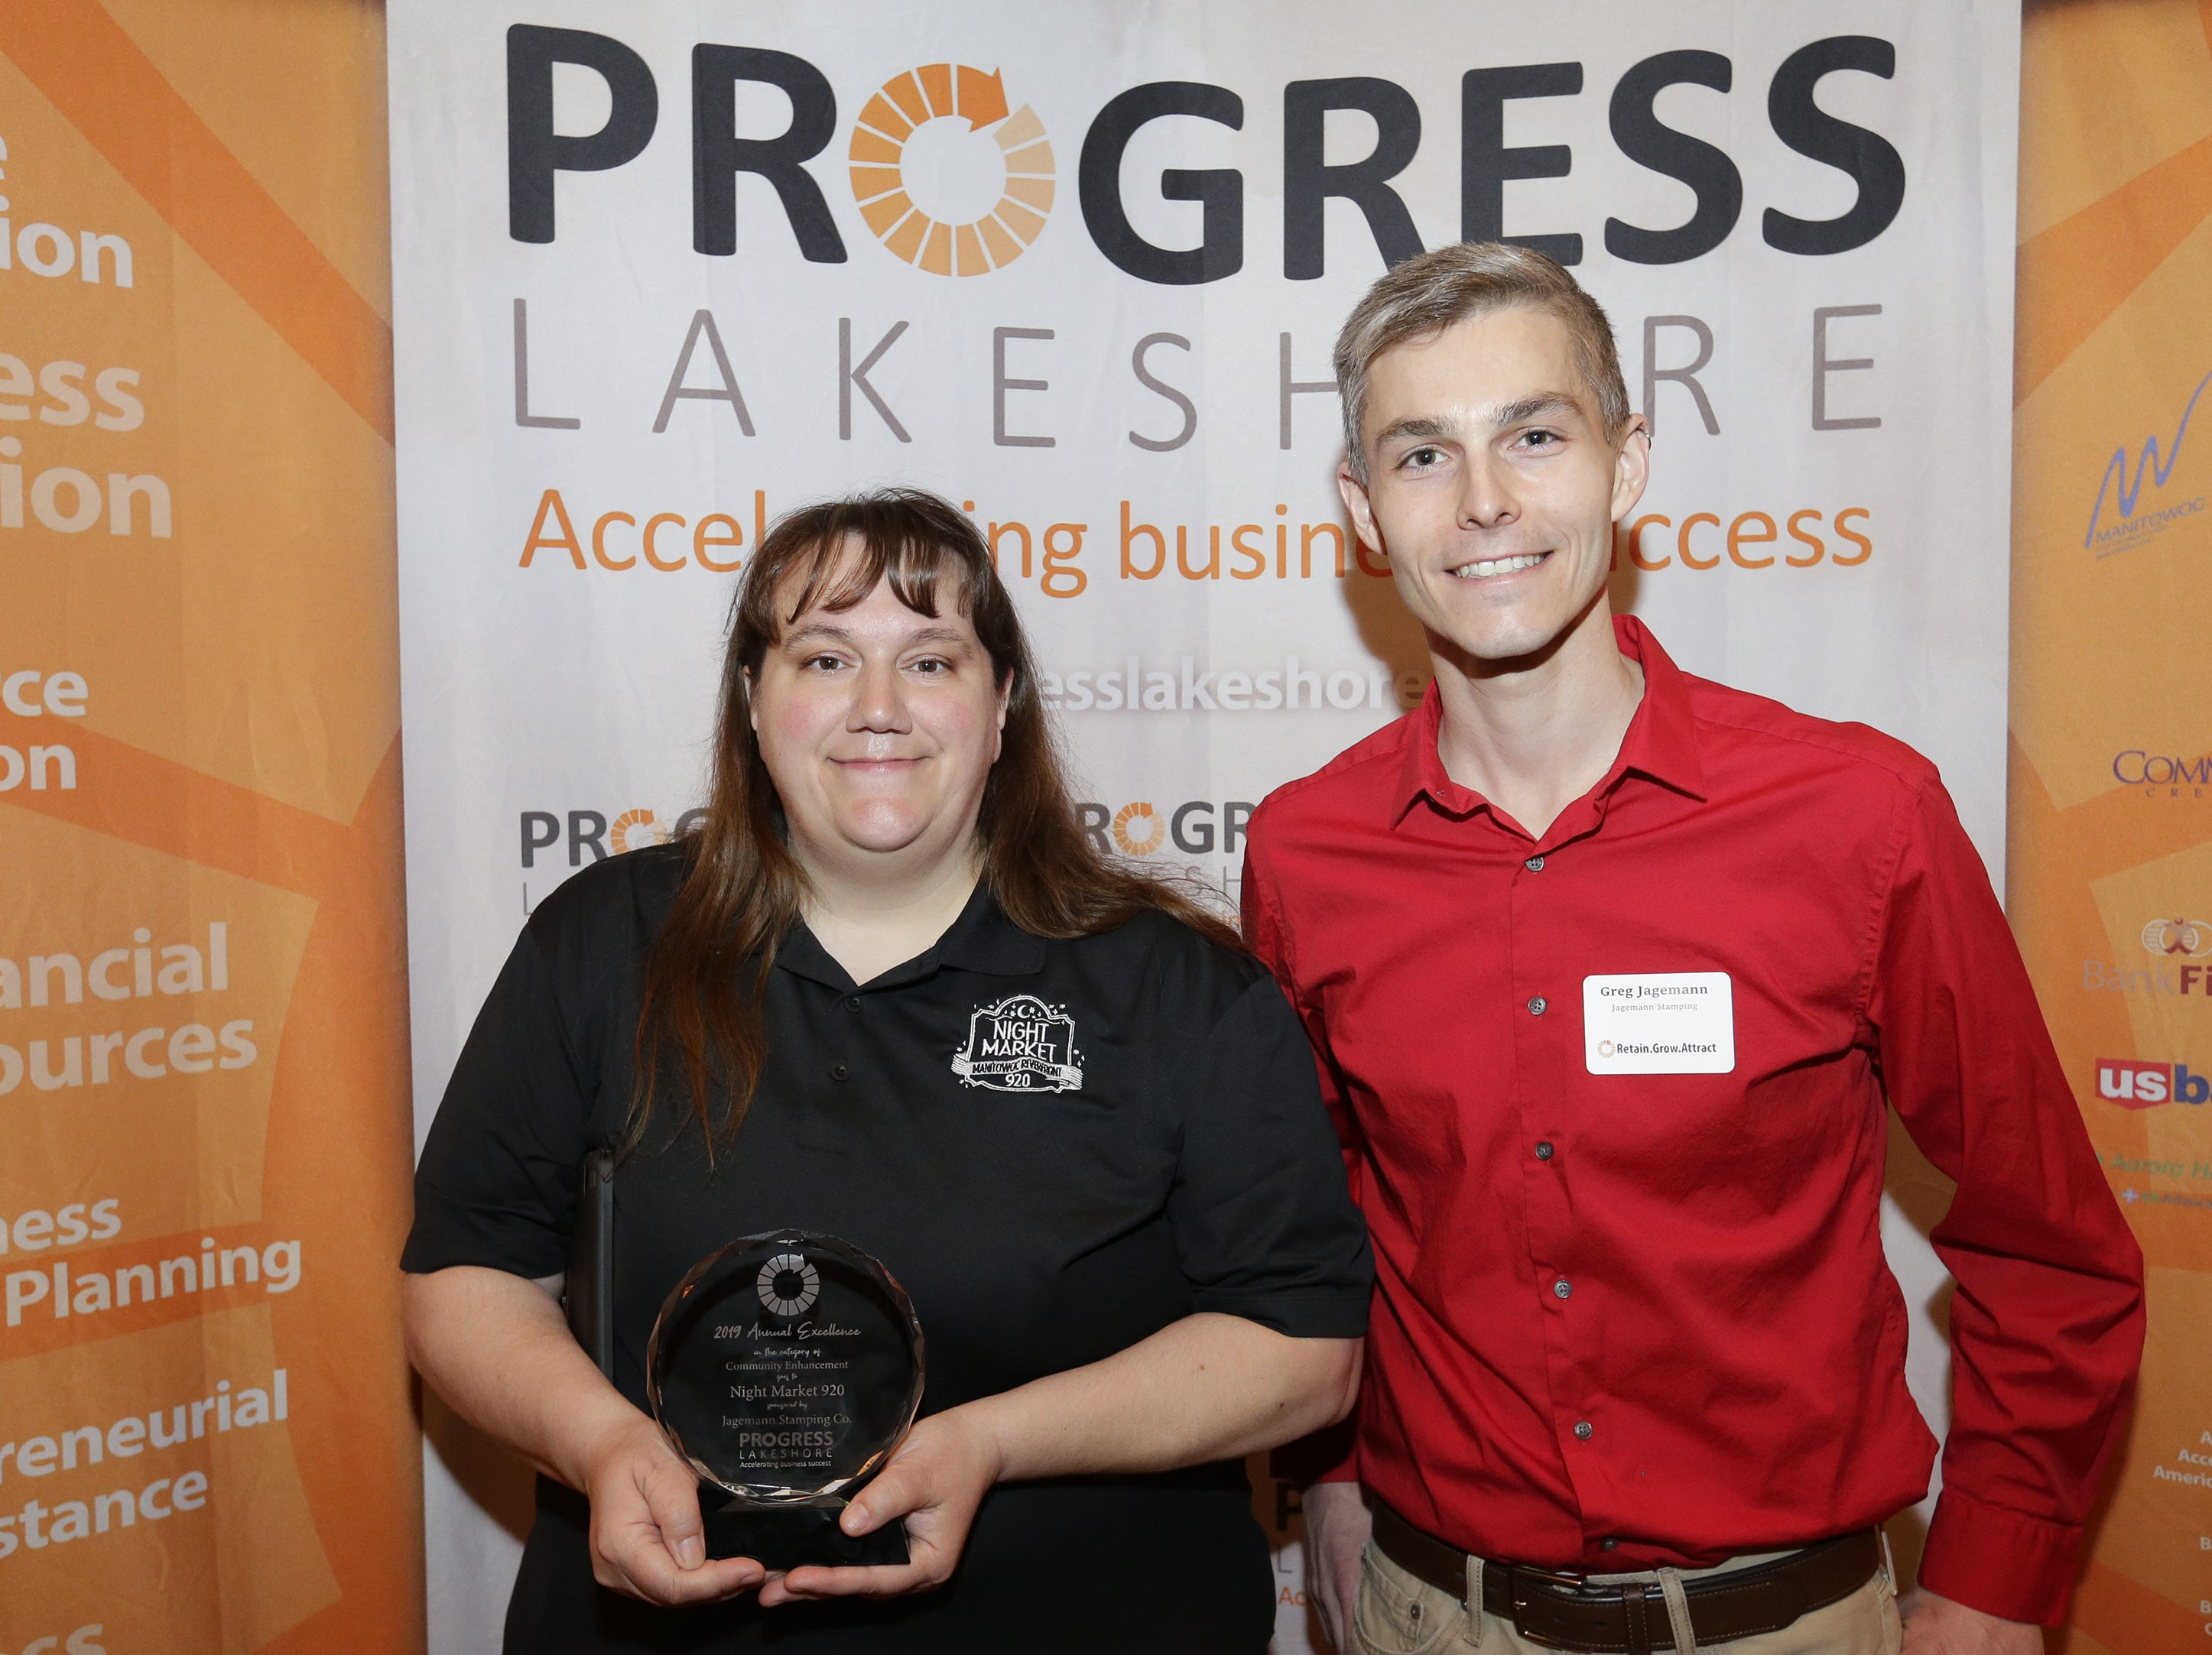 Night Market 920's Amber Daugs accepts the Community Enhancement Award from sponsor Greg Jagemann during the Progress Lakeshore Awards Breakfast at the Holiday Inn Tuesday, May 14, 2019, in Manitowoc.